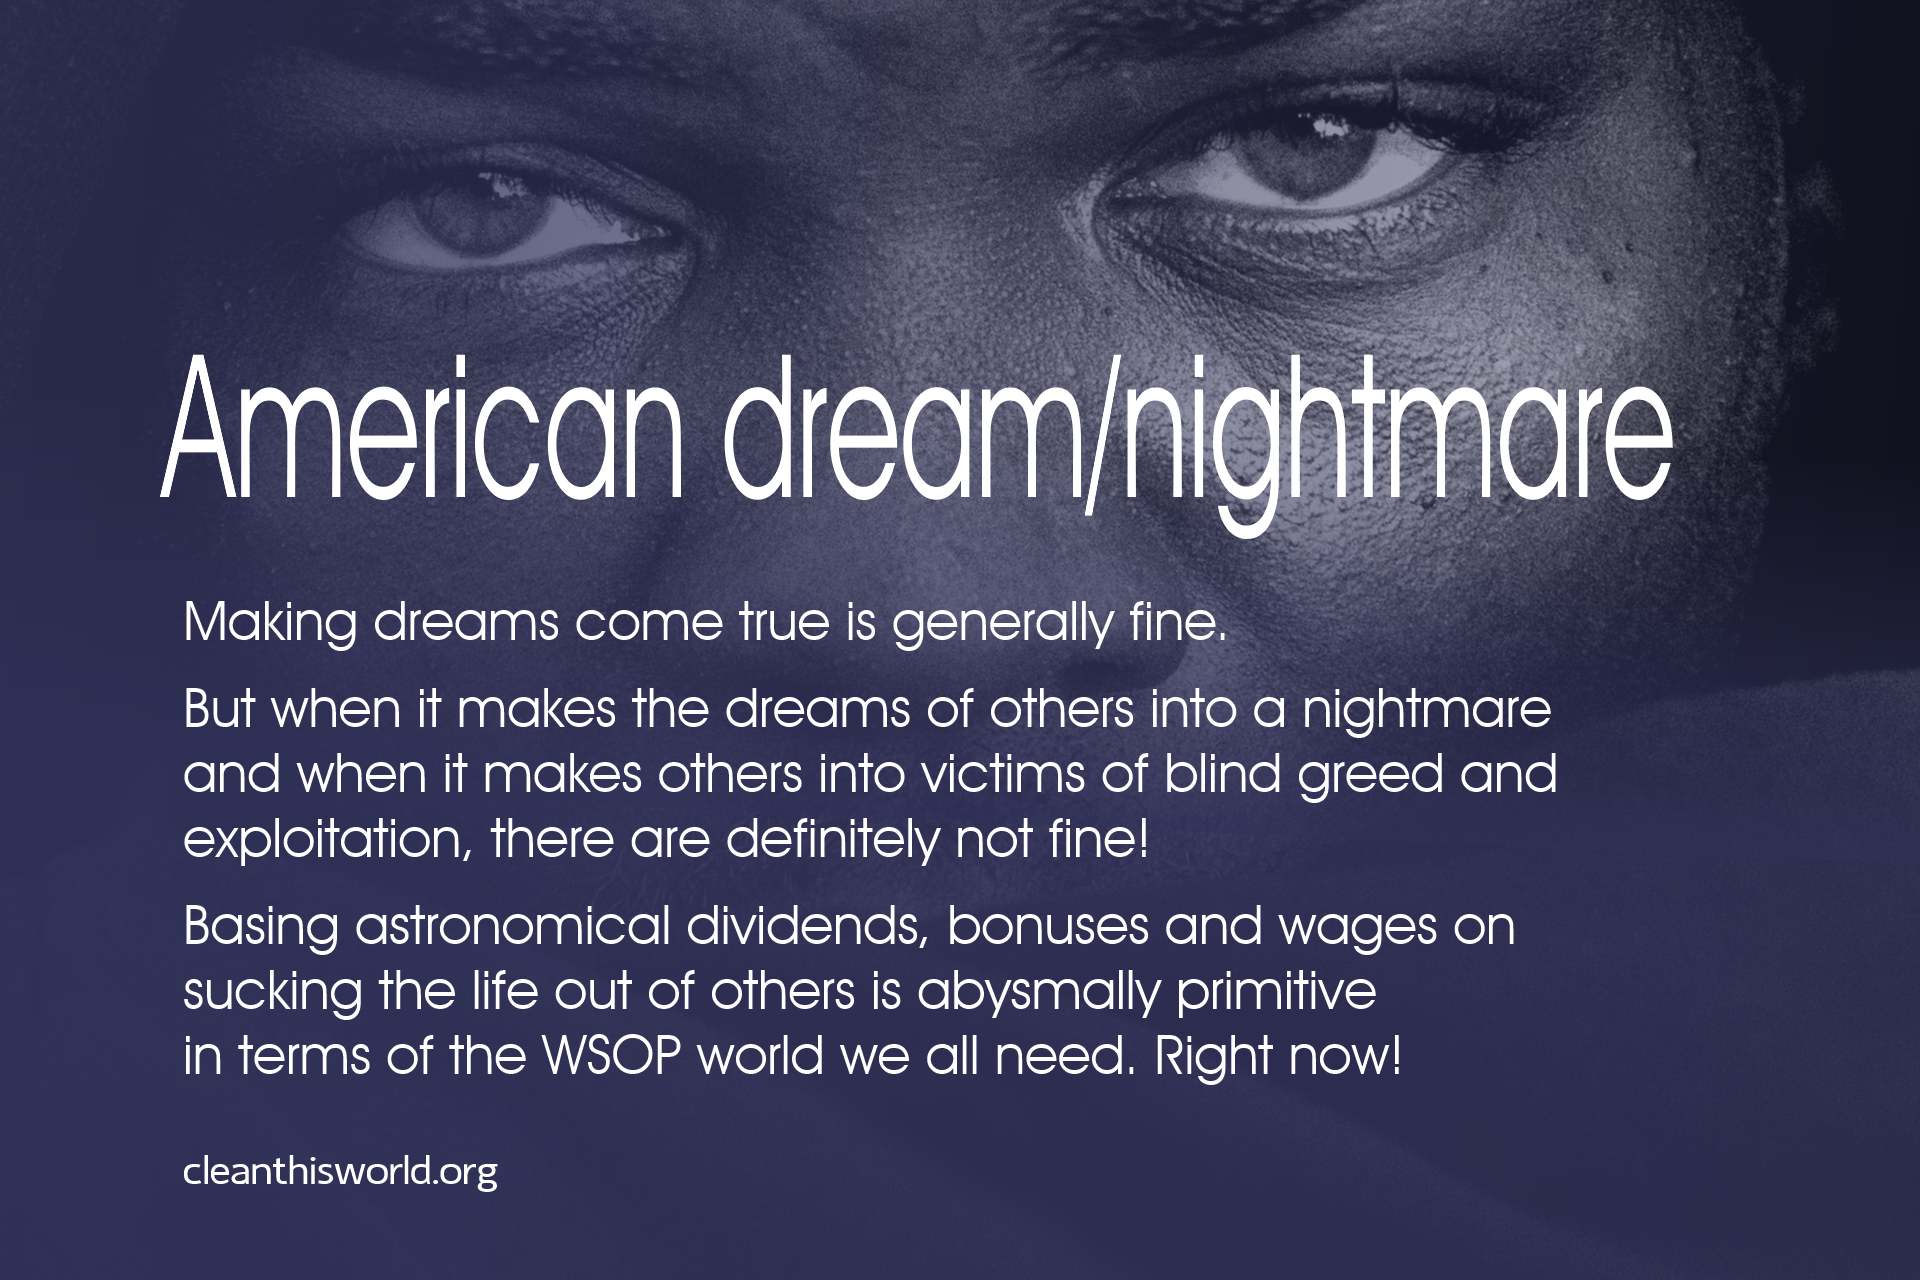 American dream/nightmare